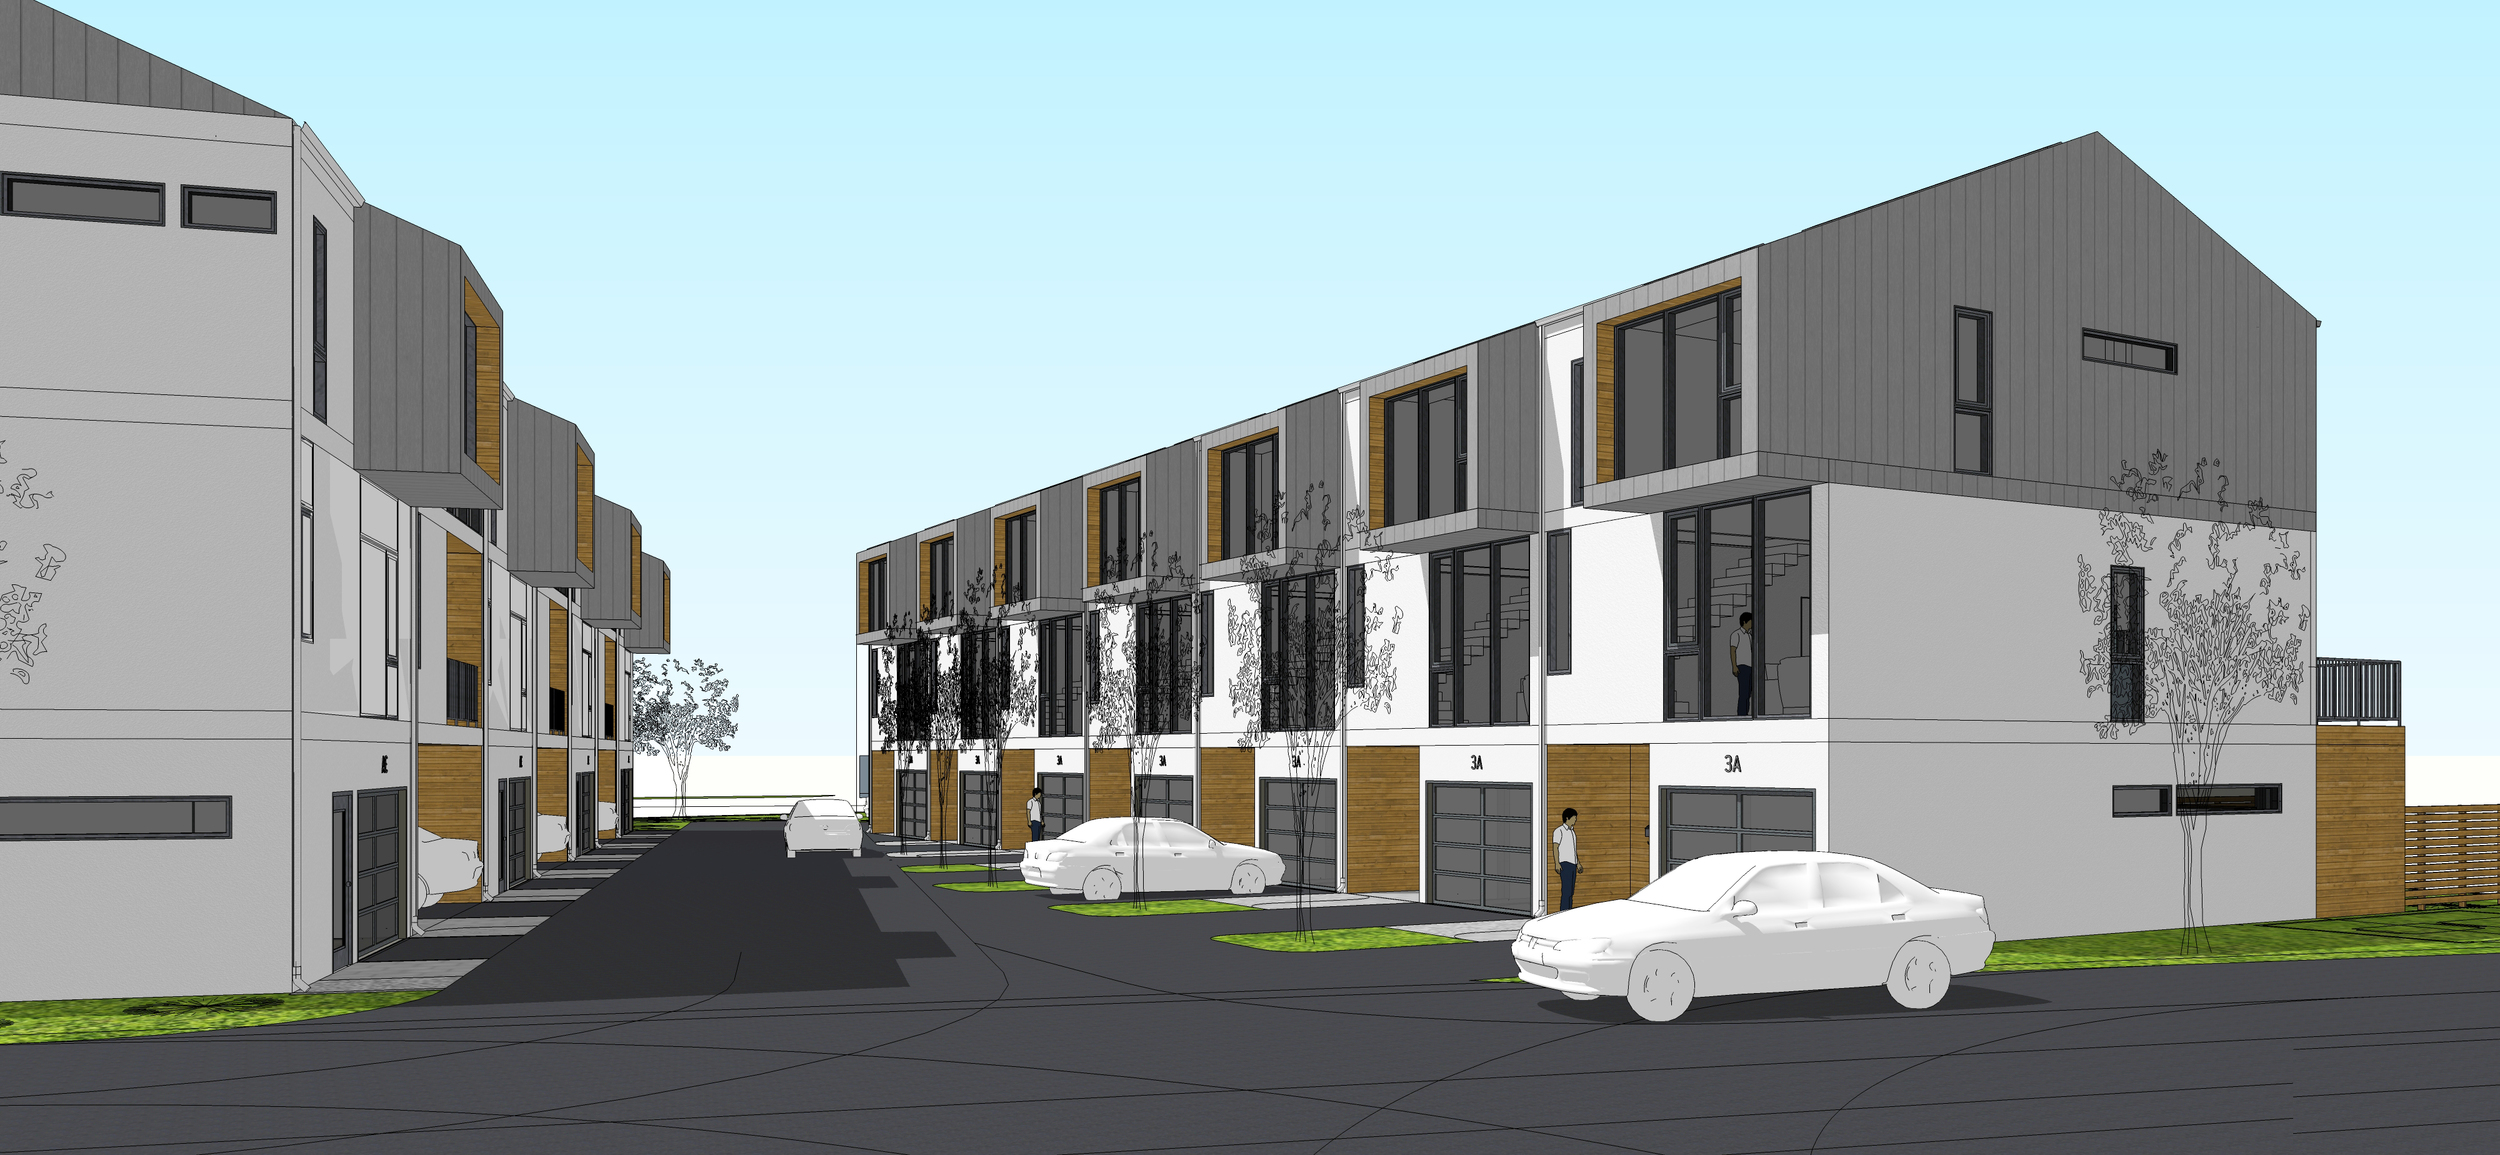 2013_12_Townhouses_perspective-2.jpg